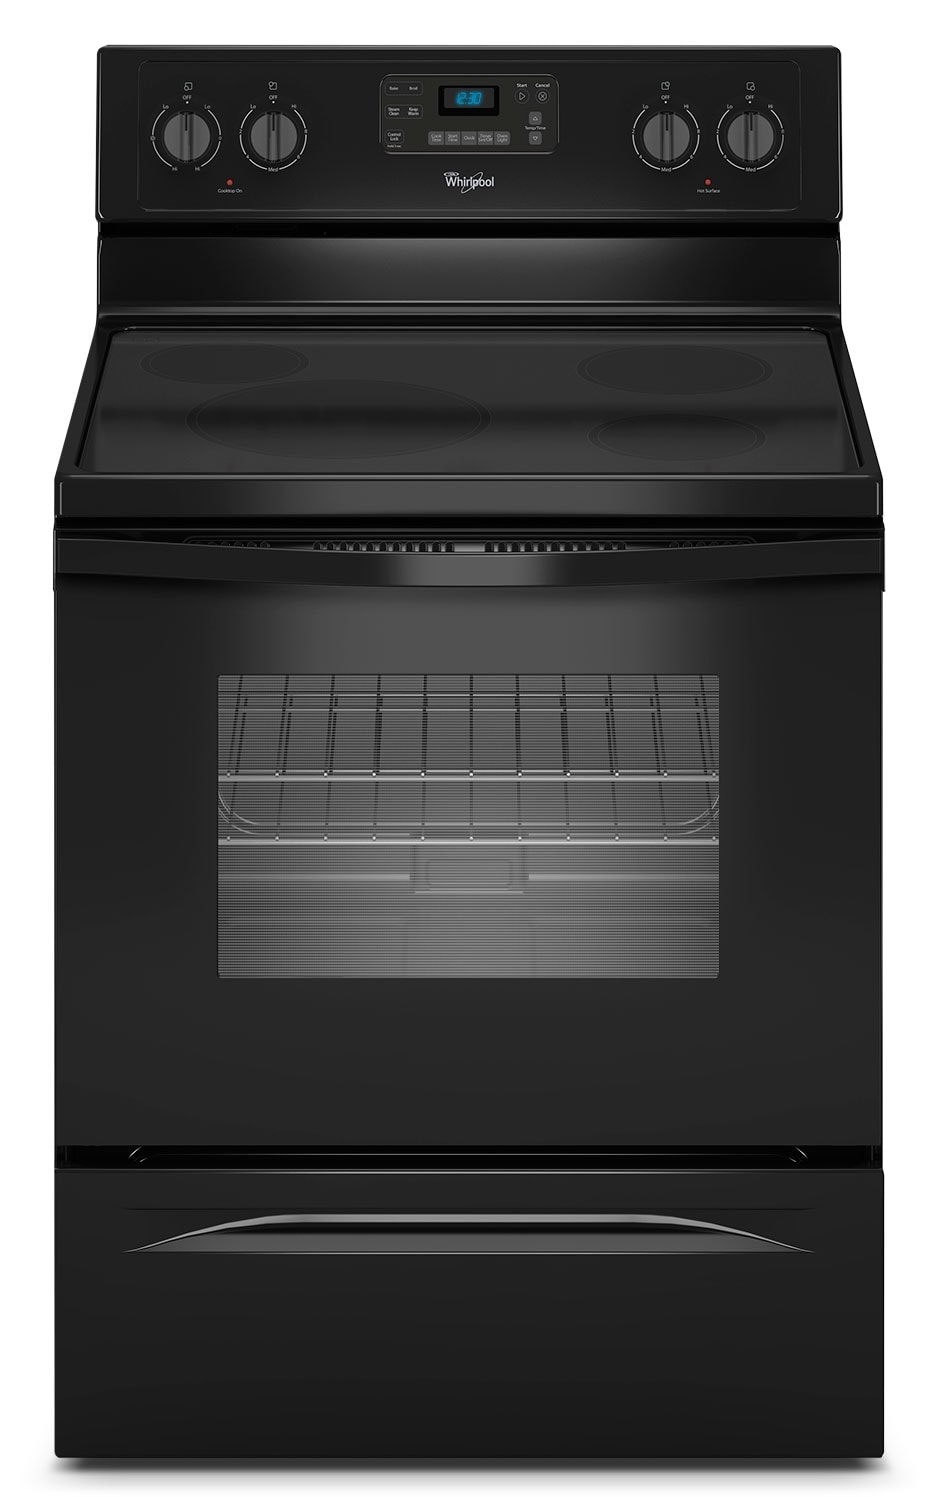 Whirlpool® 4.8 Cu. Ft. Capacity Freestanding Electric Range - Black